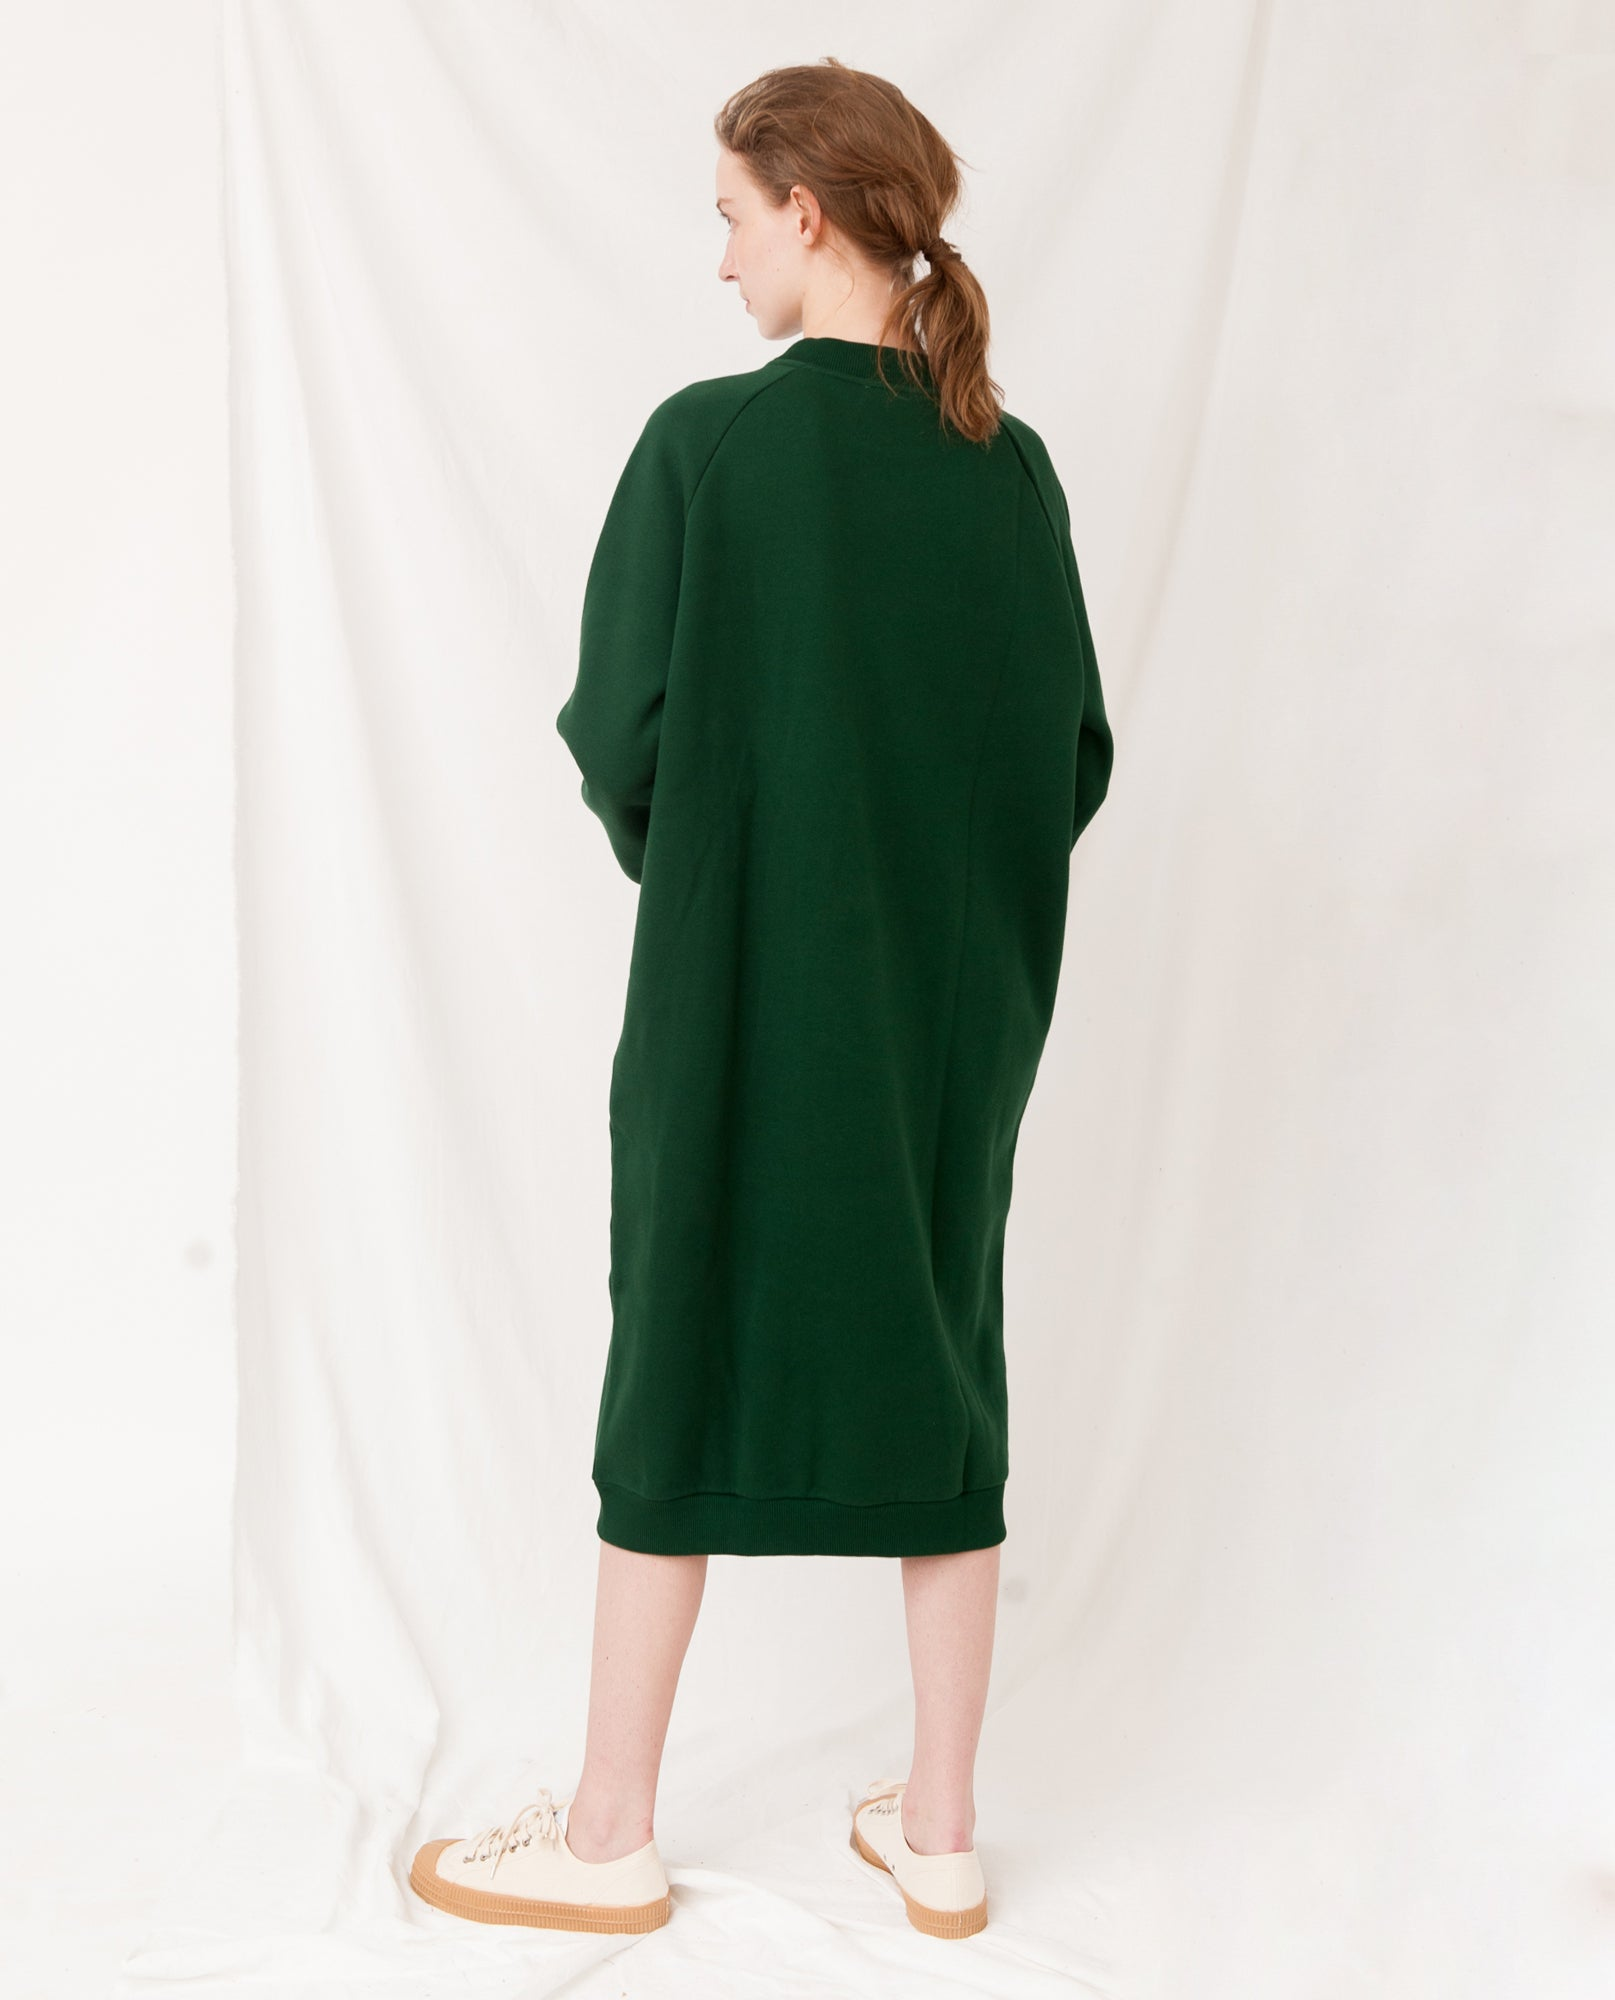 PARKER Organic Cotton Dress In Evergreen